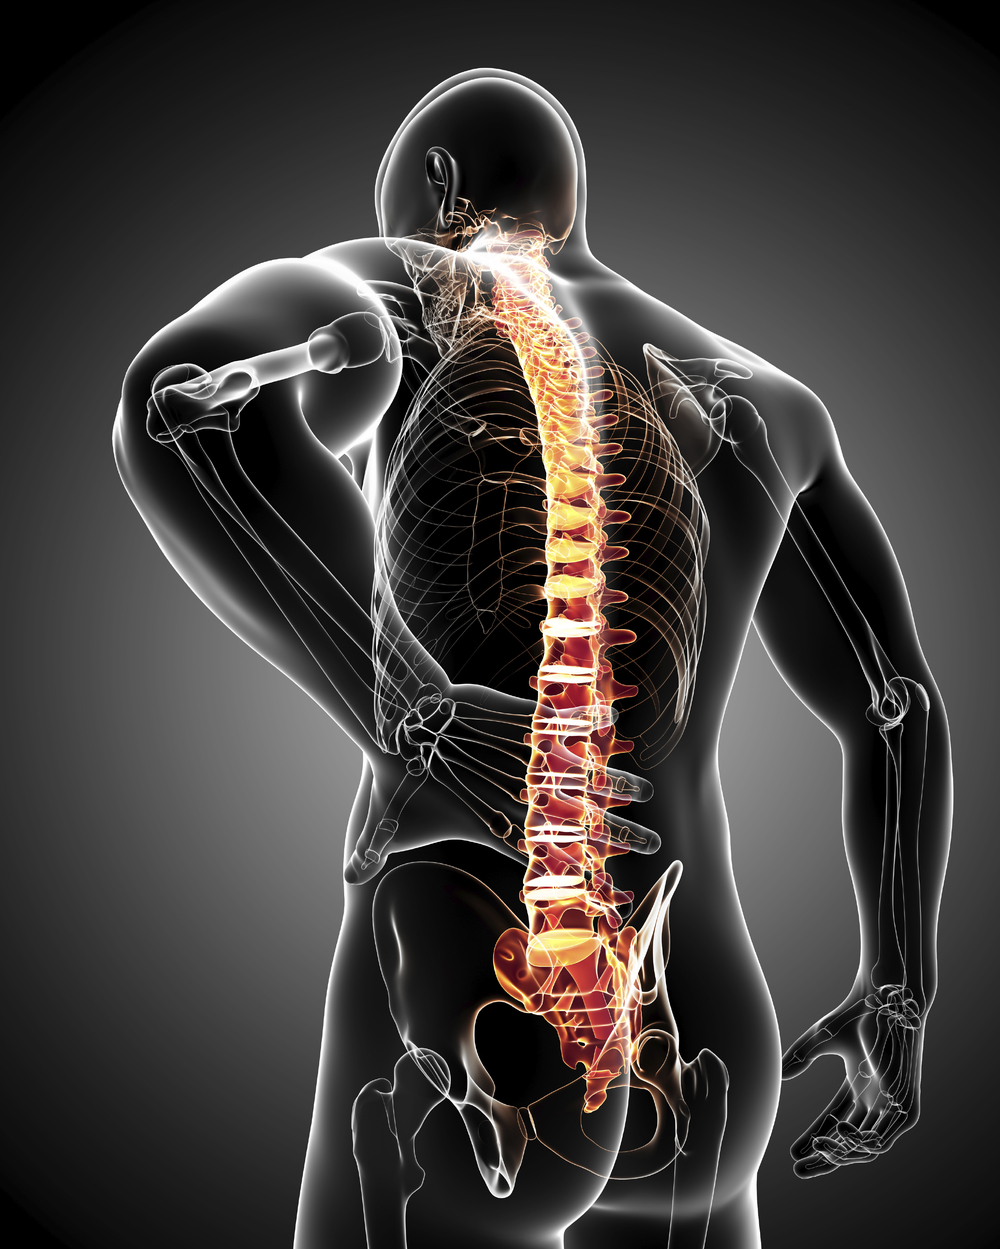 Our goal is to restore structure and function using evidence-based chiropractic techniques .